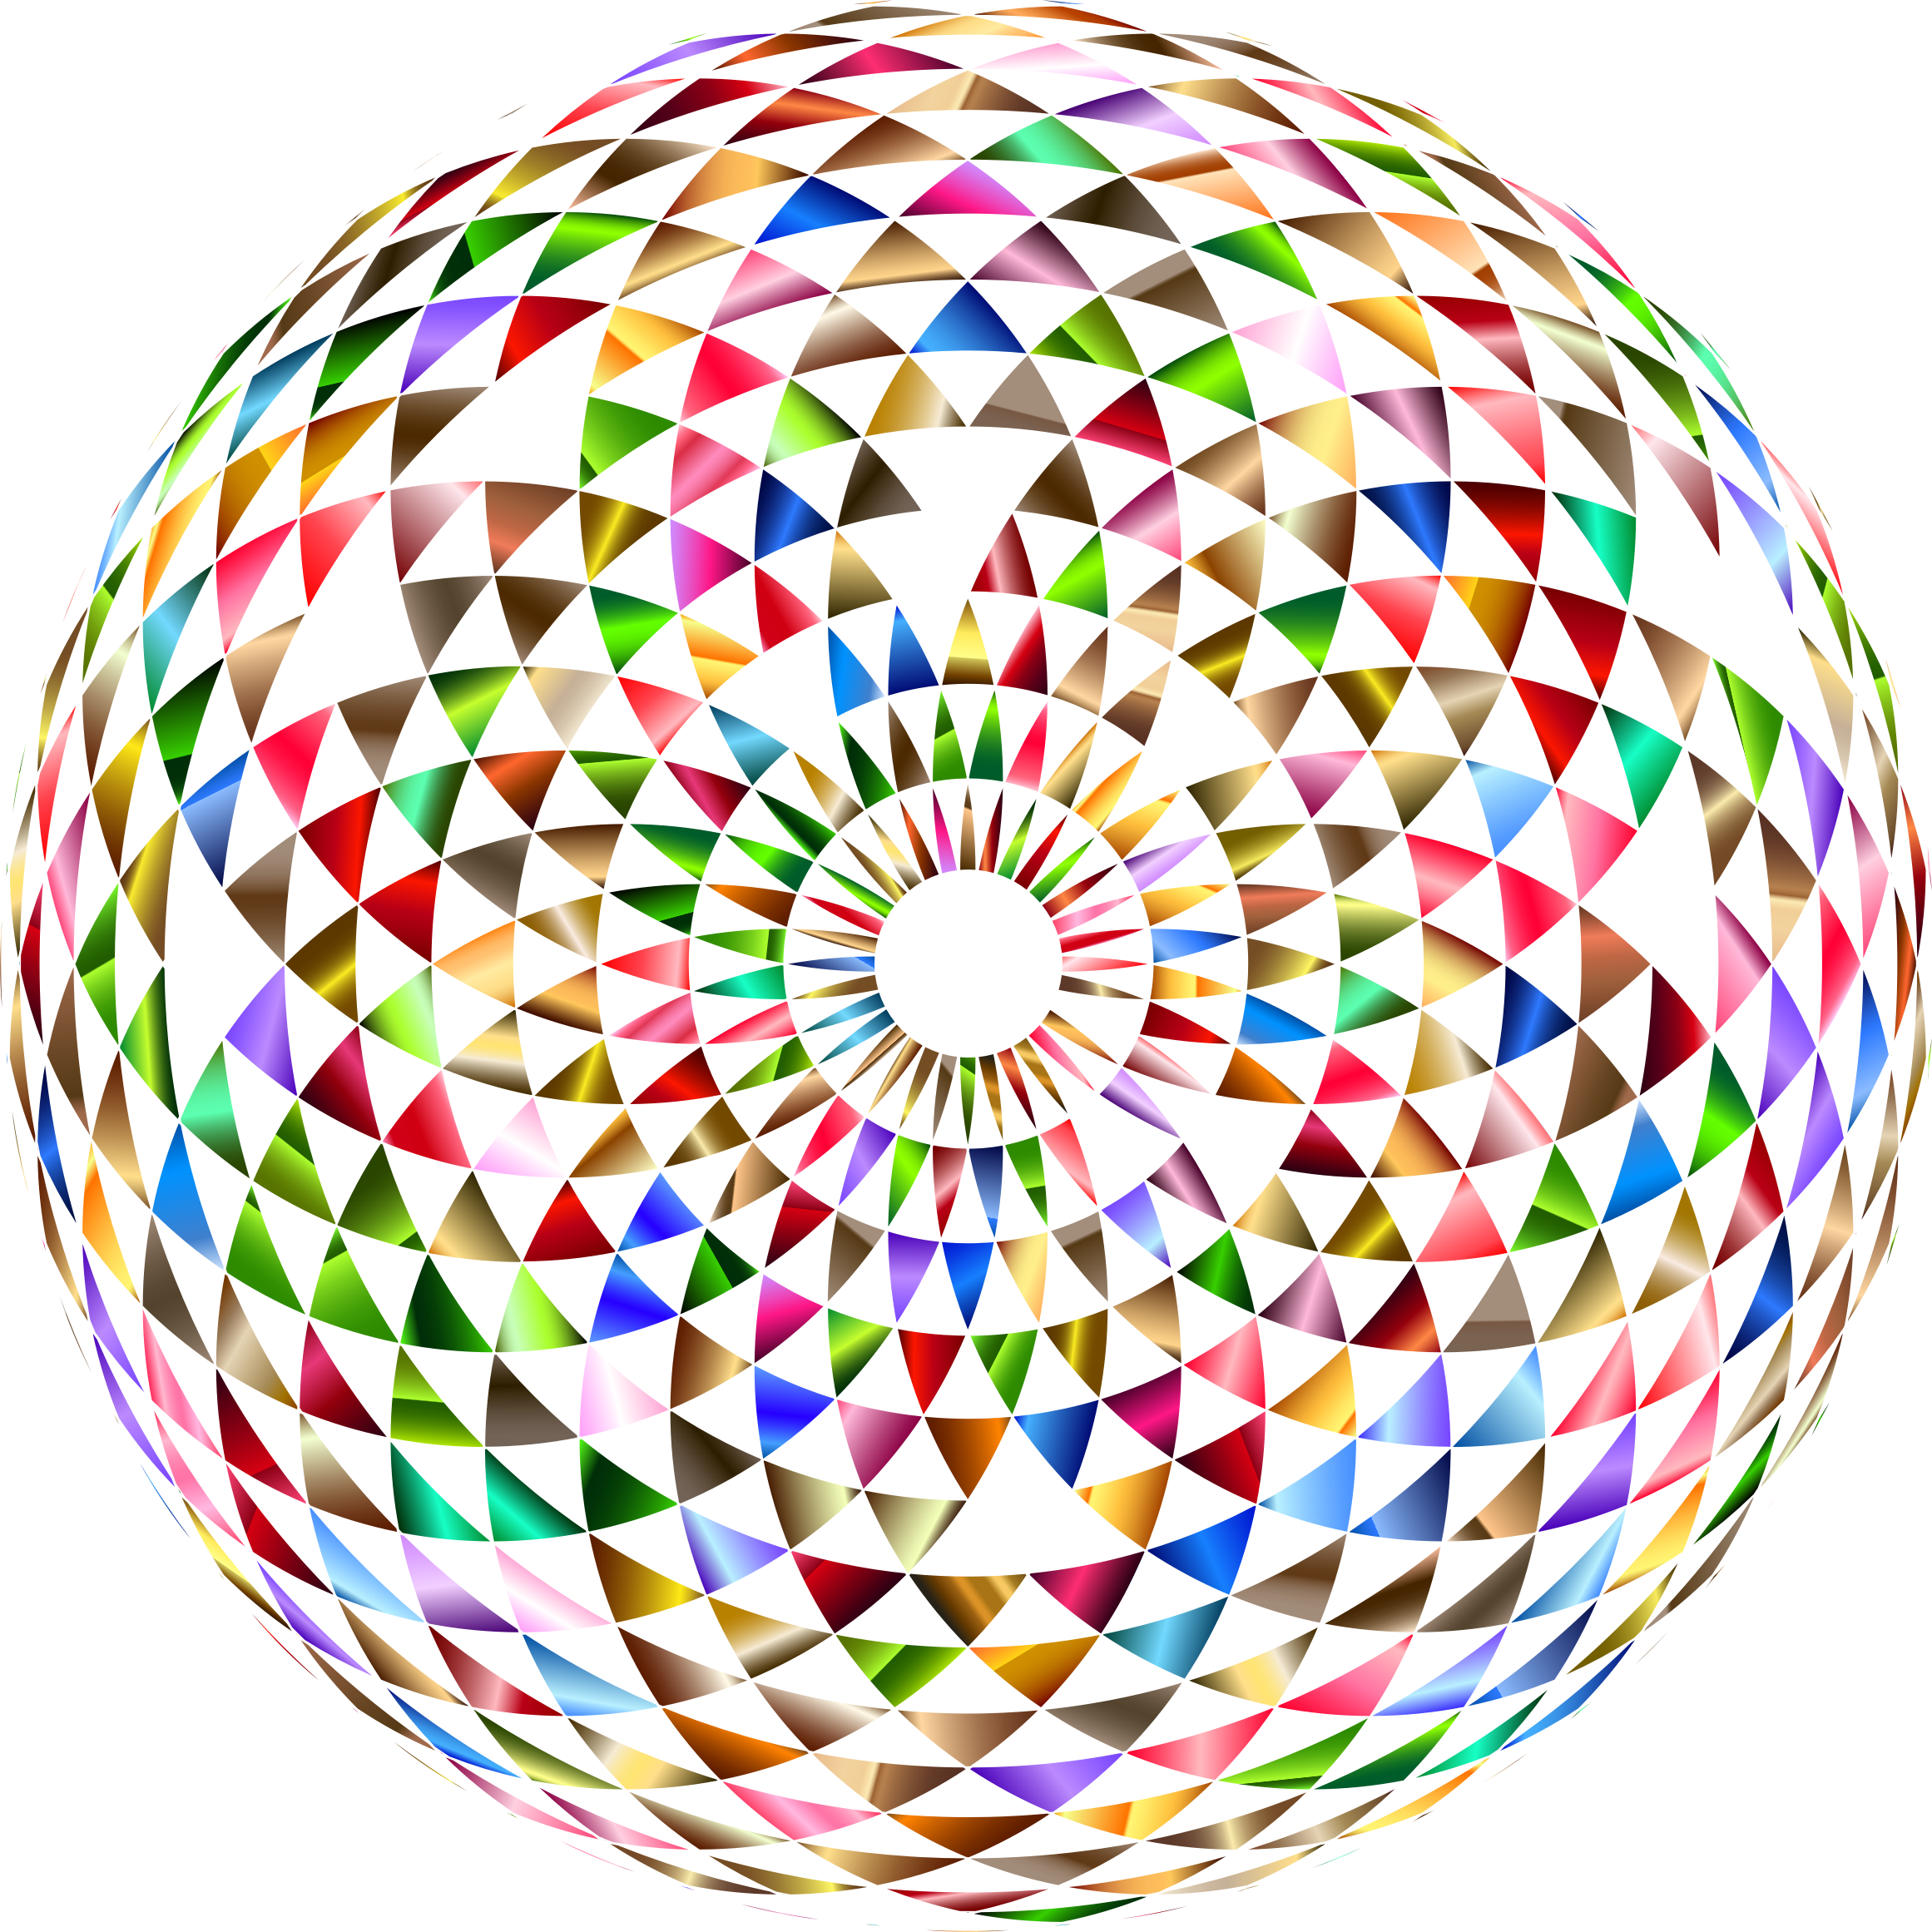 Colorful Toroid Mandala 5 by GDJ